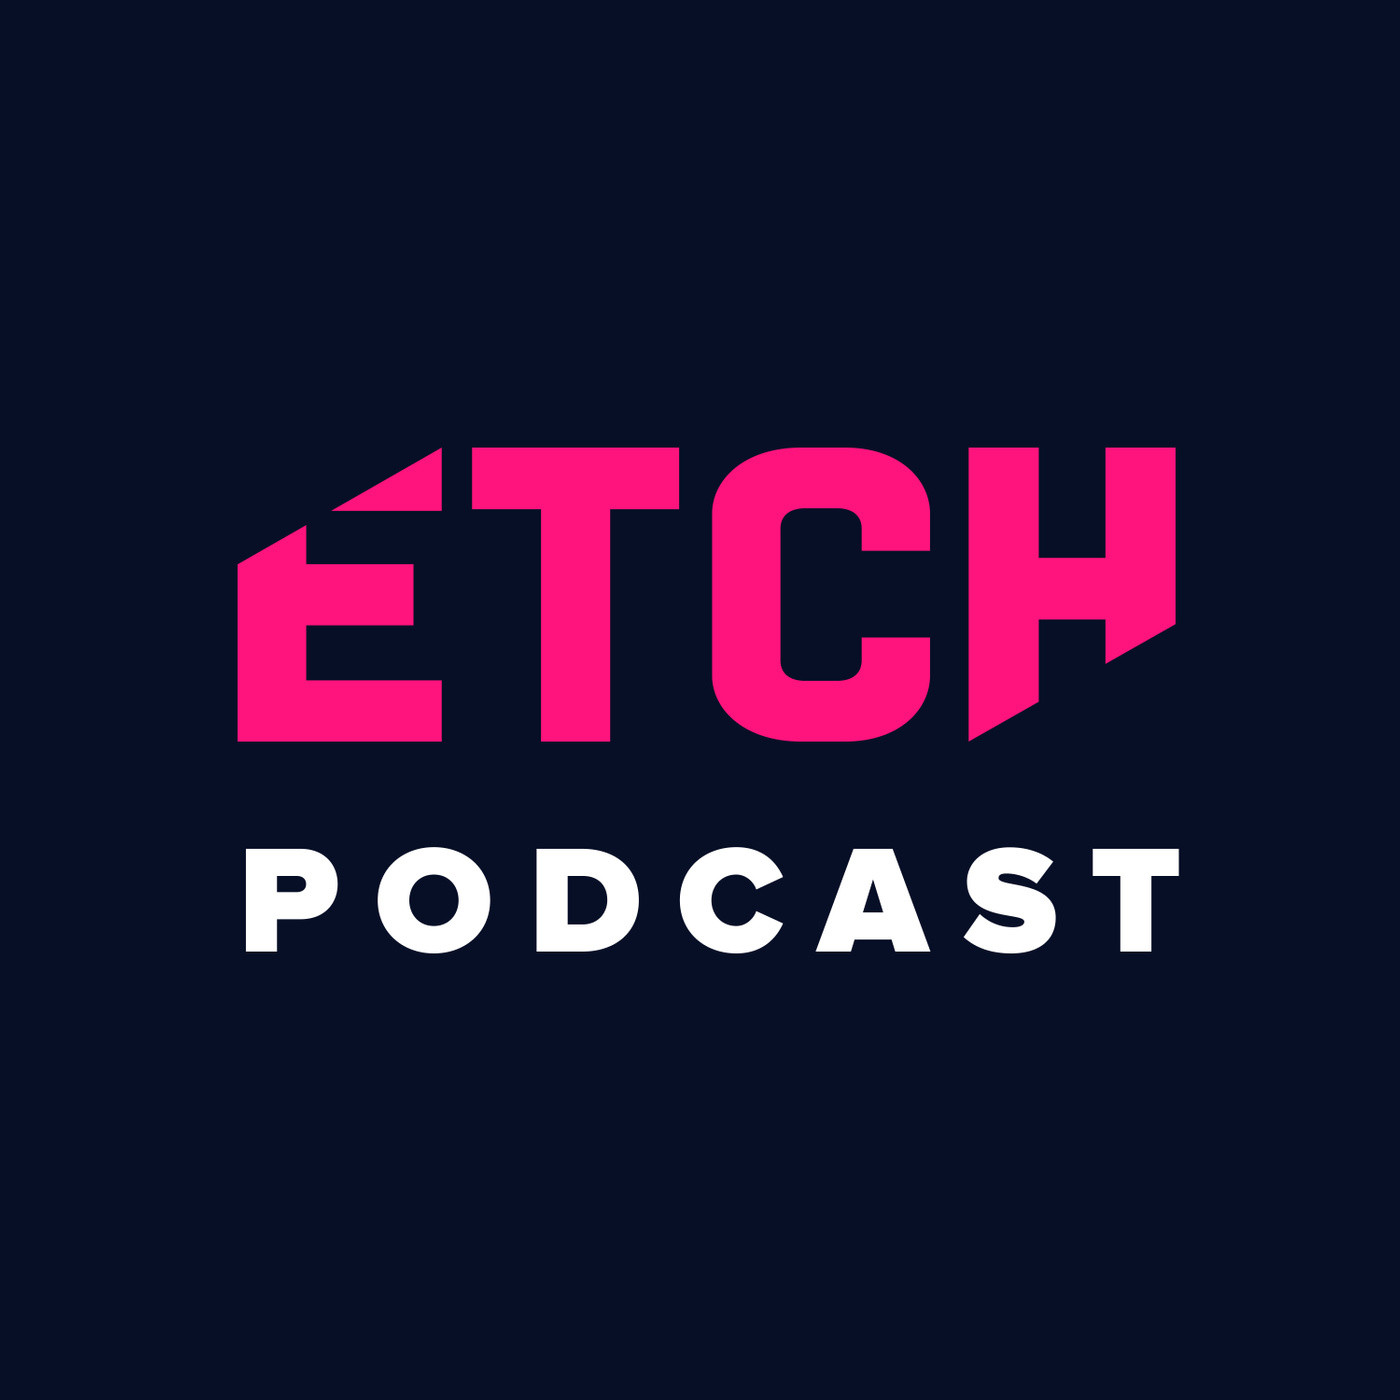 The Etch Podcast